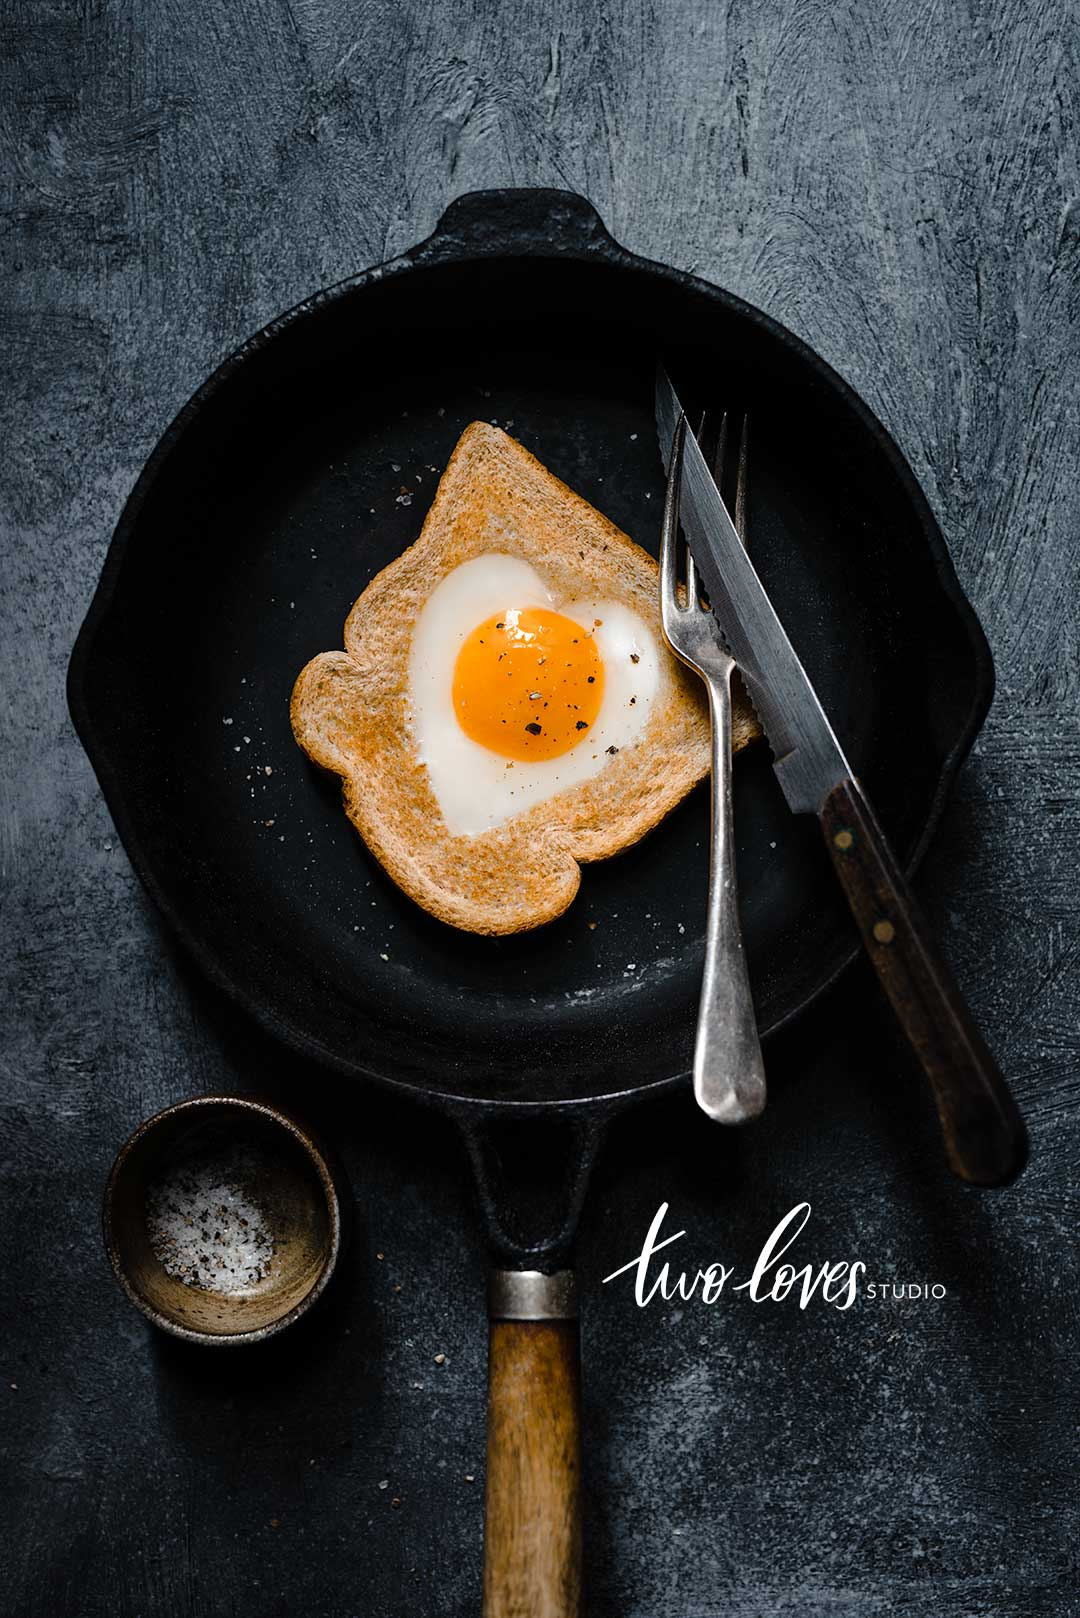 3 Words To Describe Your Food Photography Style | Learn how to confidently speak to potential clients about your style. Perfect for new food photographers looking to grown their freelance photography business. Click through for FREE exercise.